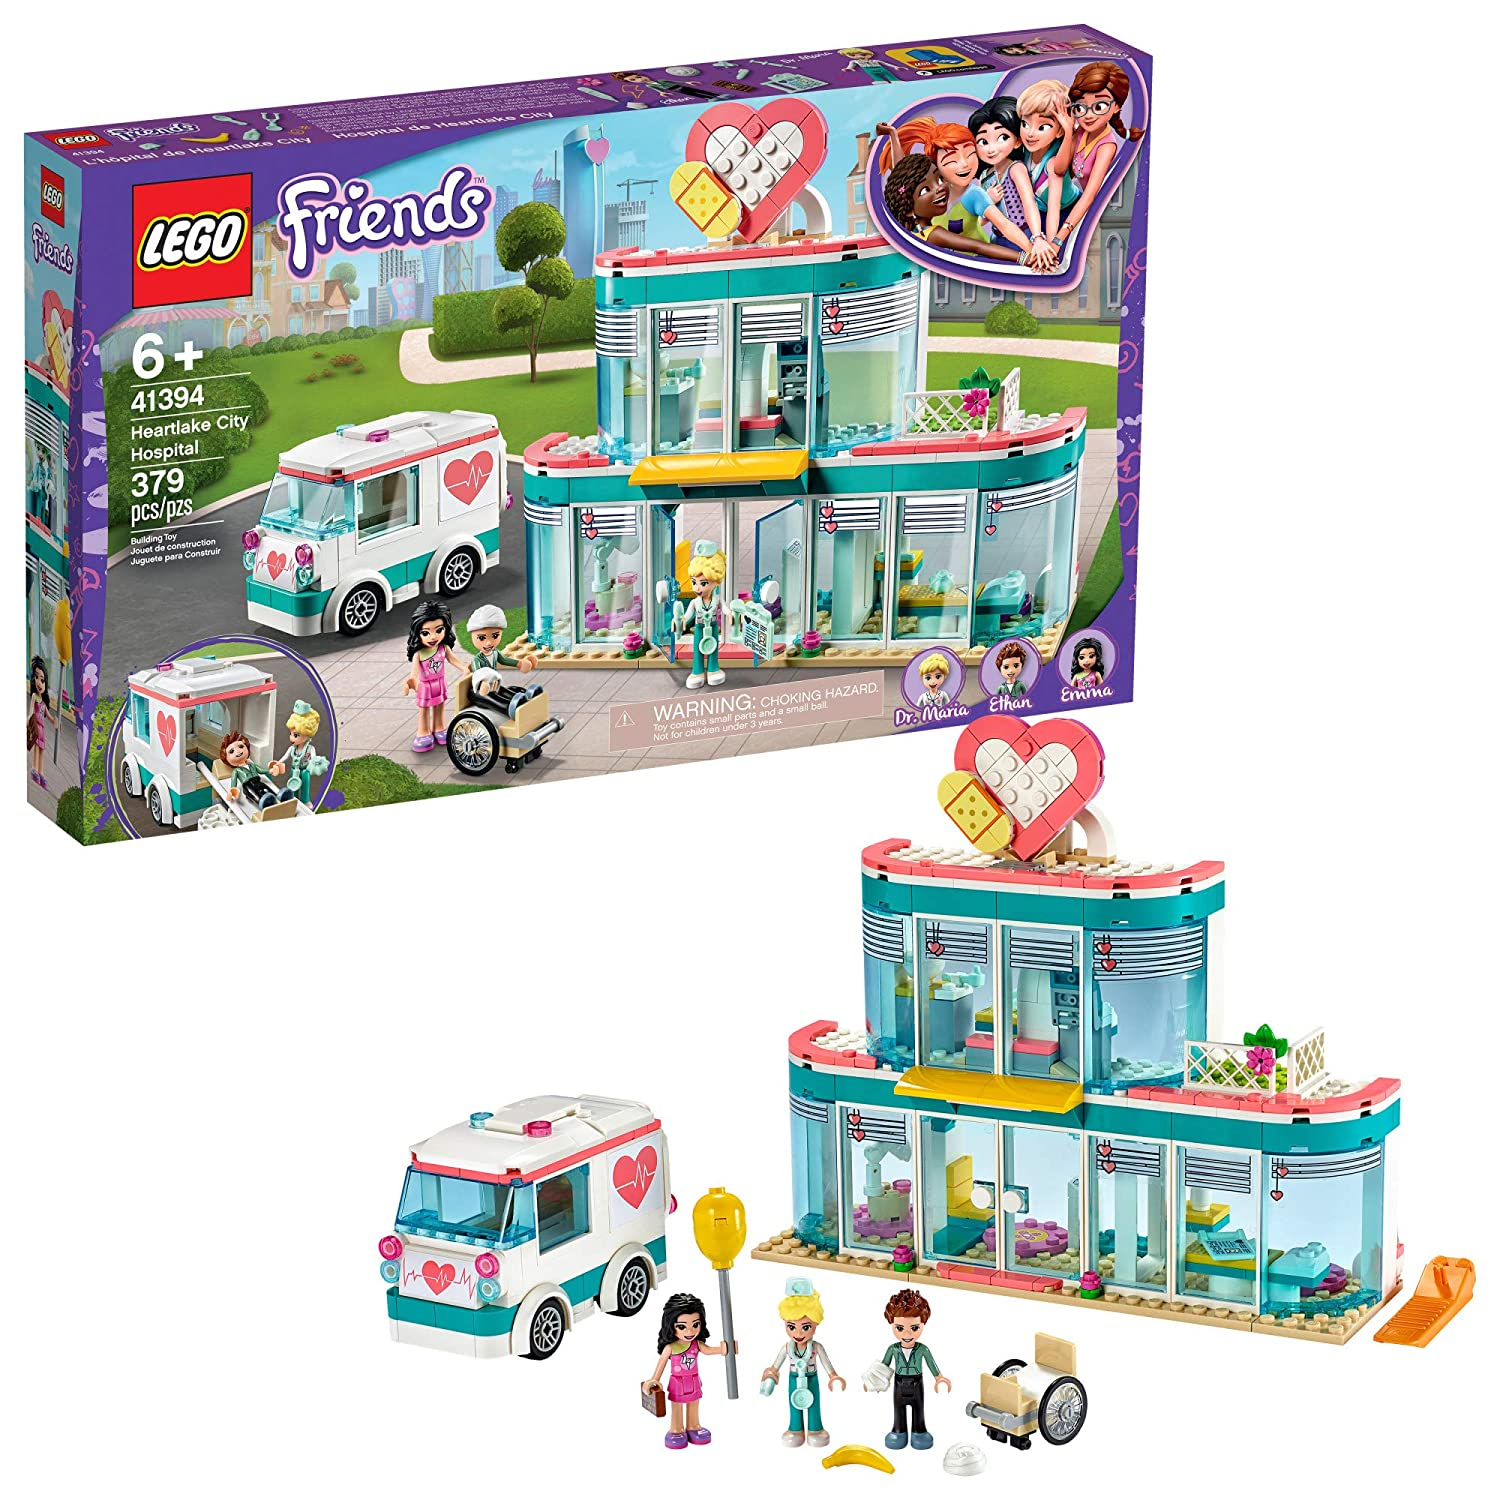 LEGO Friends Heartlake City Hospital 41394 Best Doctor Toy Building Kit, Featuring Friends Character Emma, New 2020 (379 Pieces)